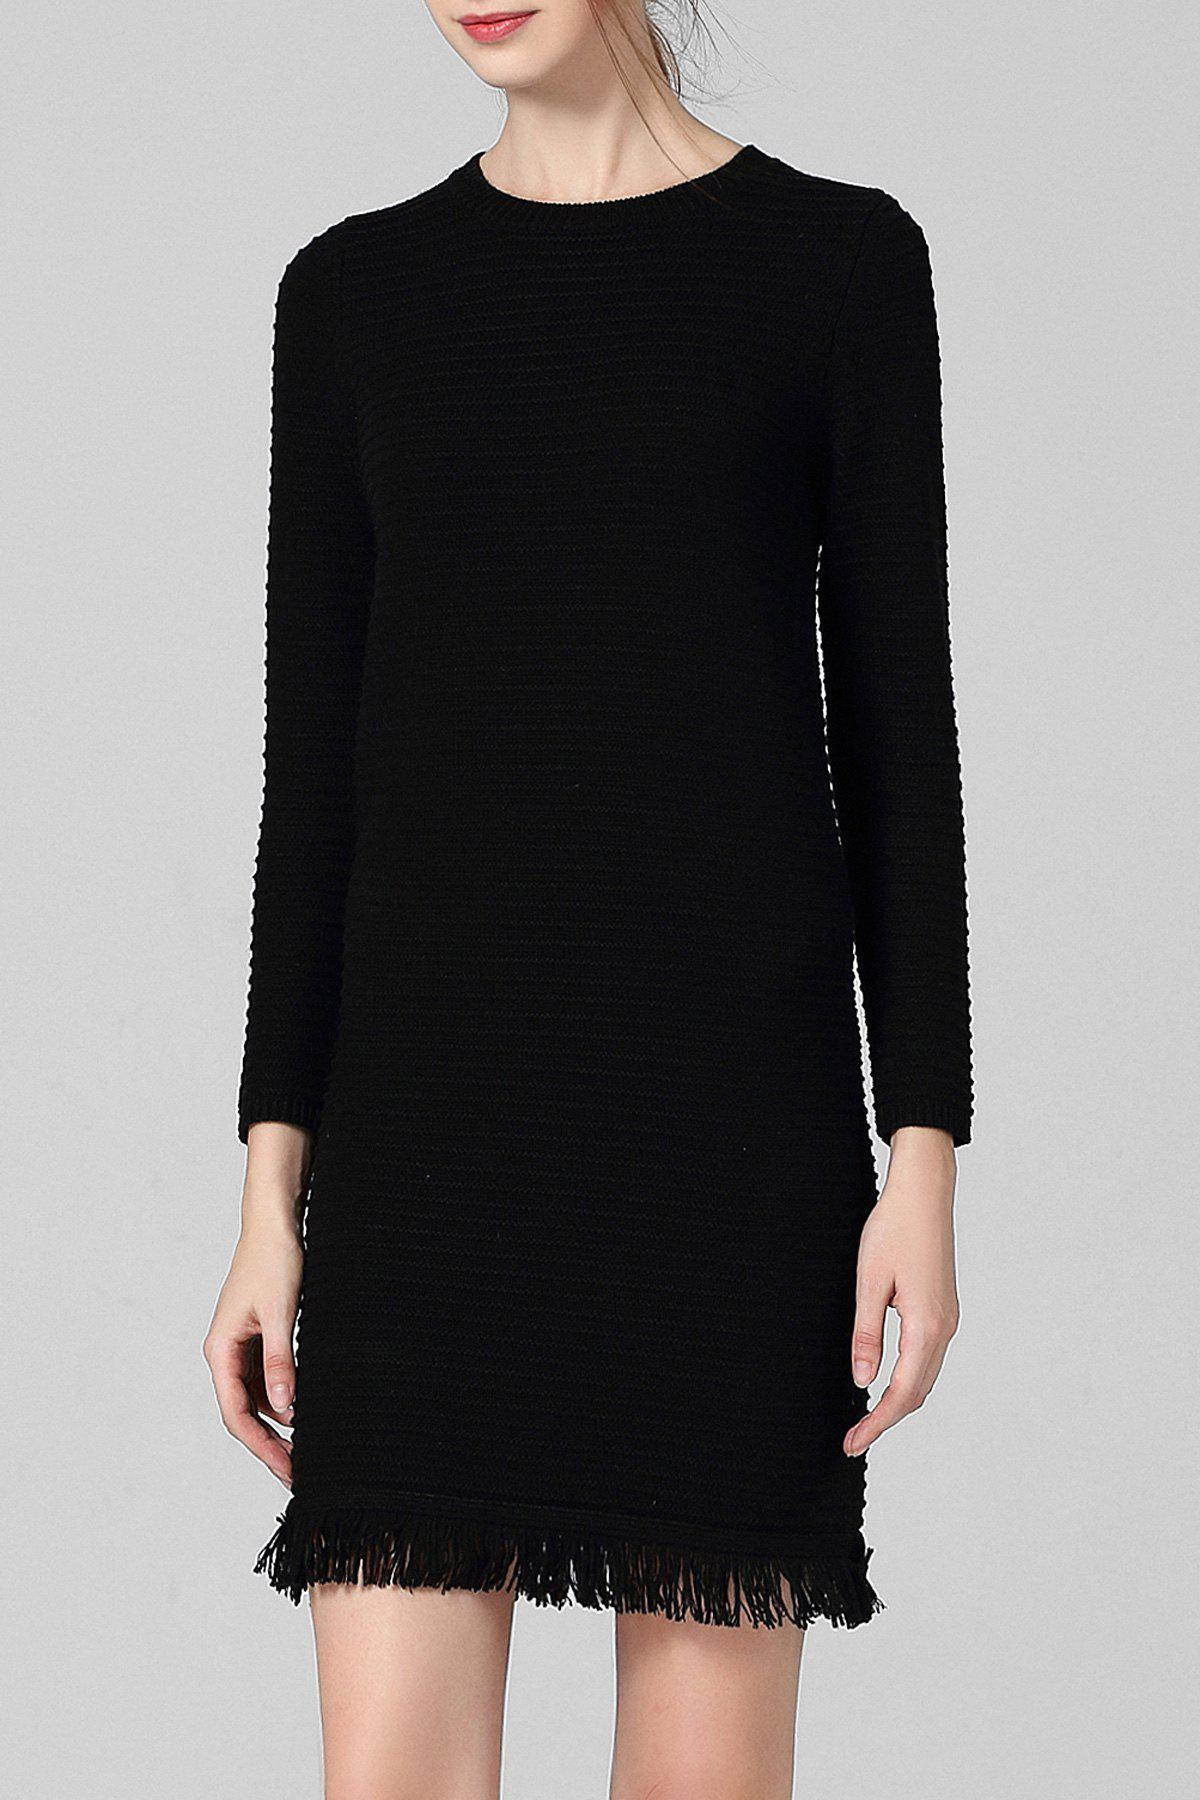 Unique Long Sleeve Fringe Fitted Sweater Dress